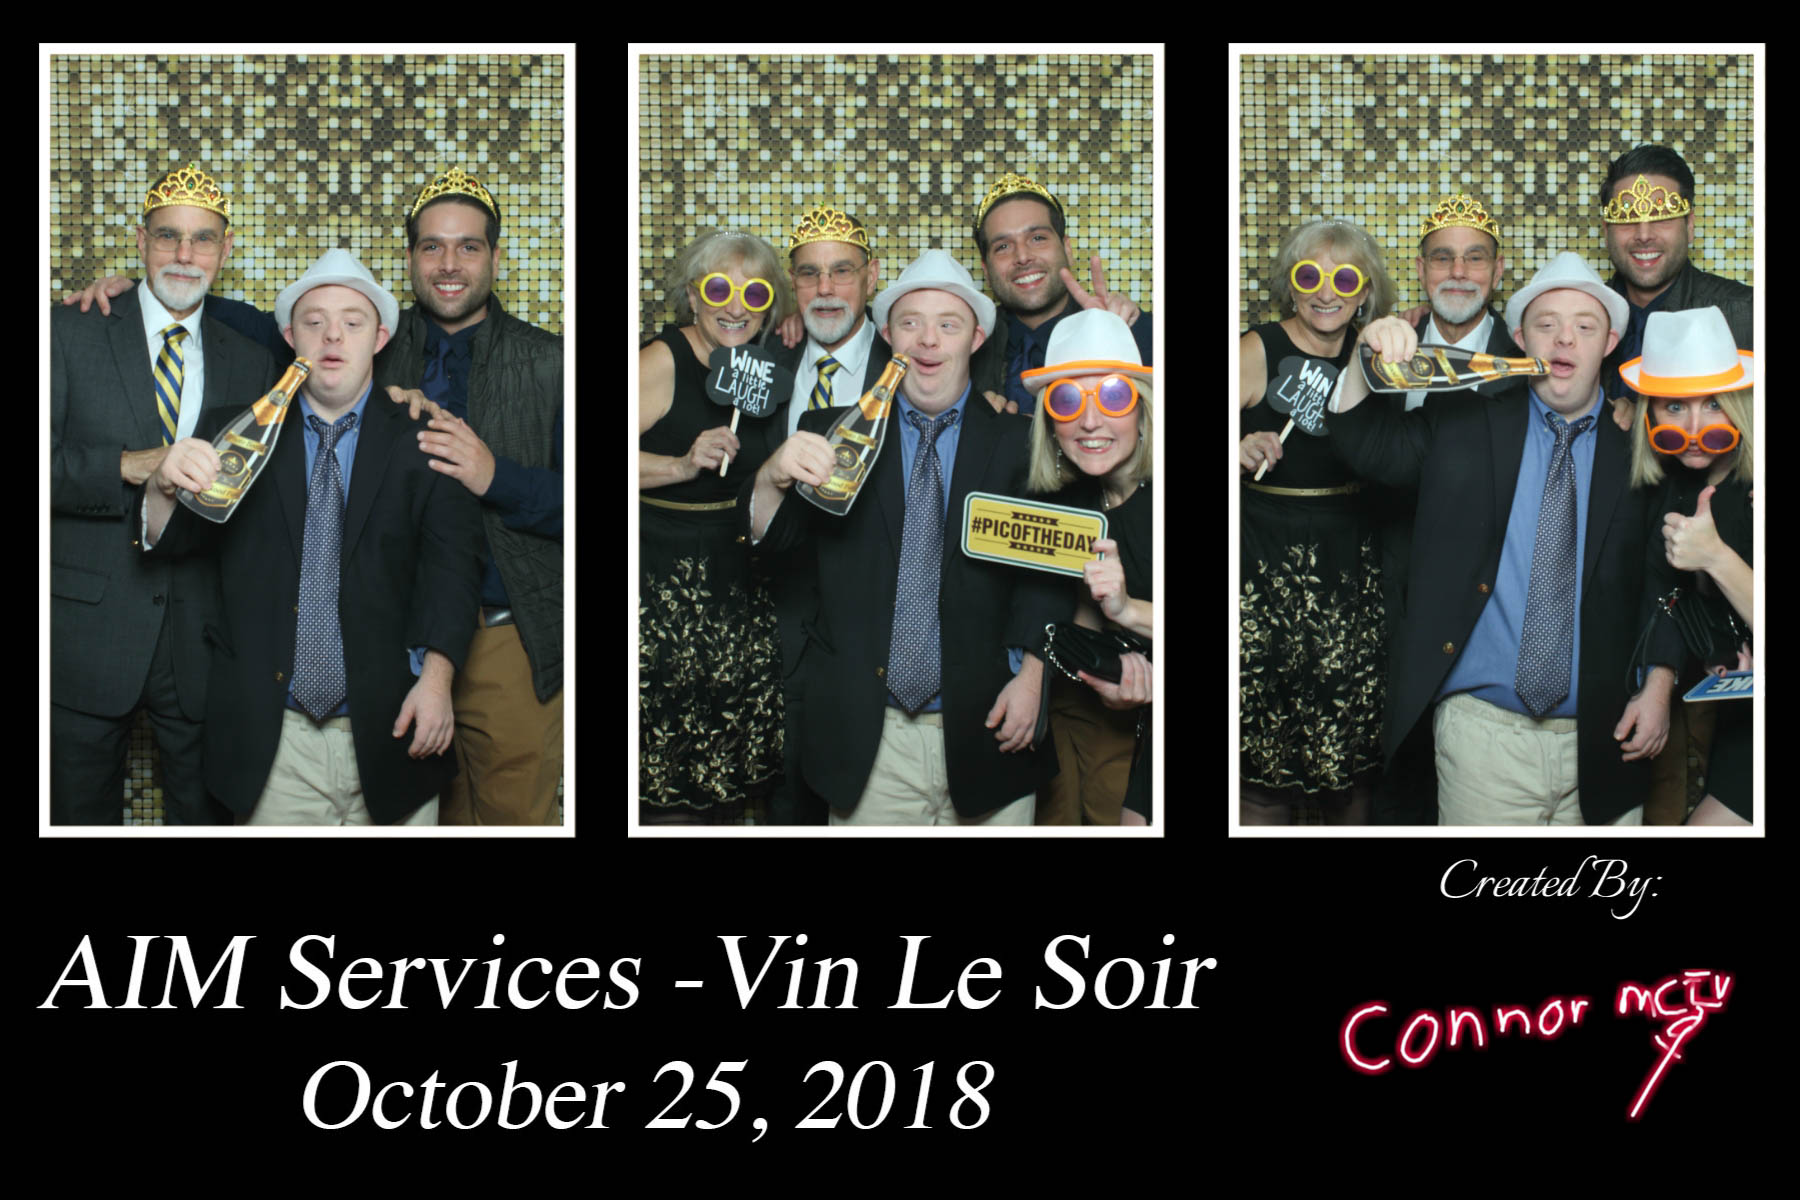 Vin Le Soir to benefit AIM Services, Inc. photo booth picture of five people